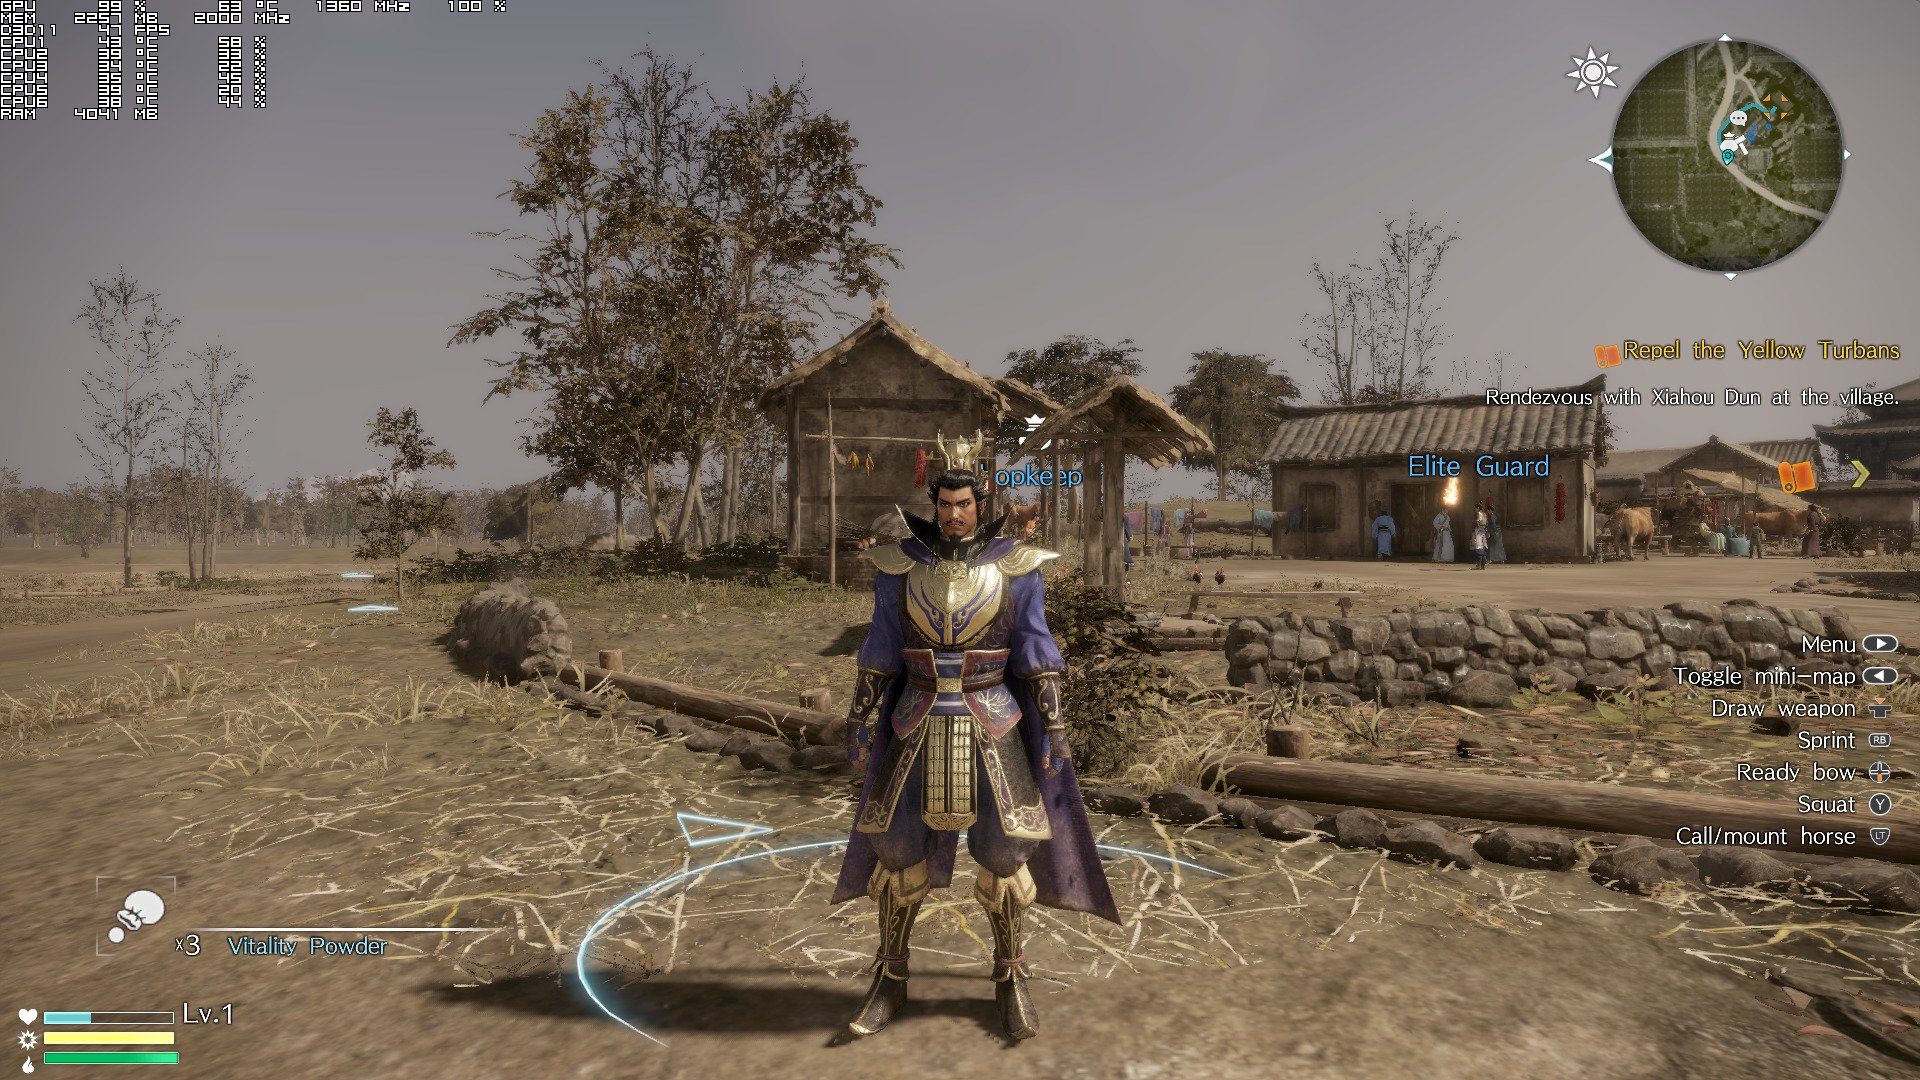 Performa Dynasty Warriors 9 Di Pc Sungguh Kacau Gamebrott Com